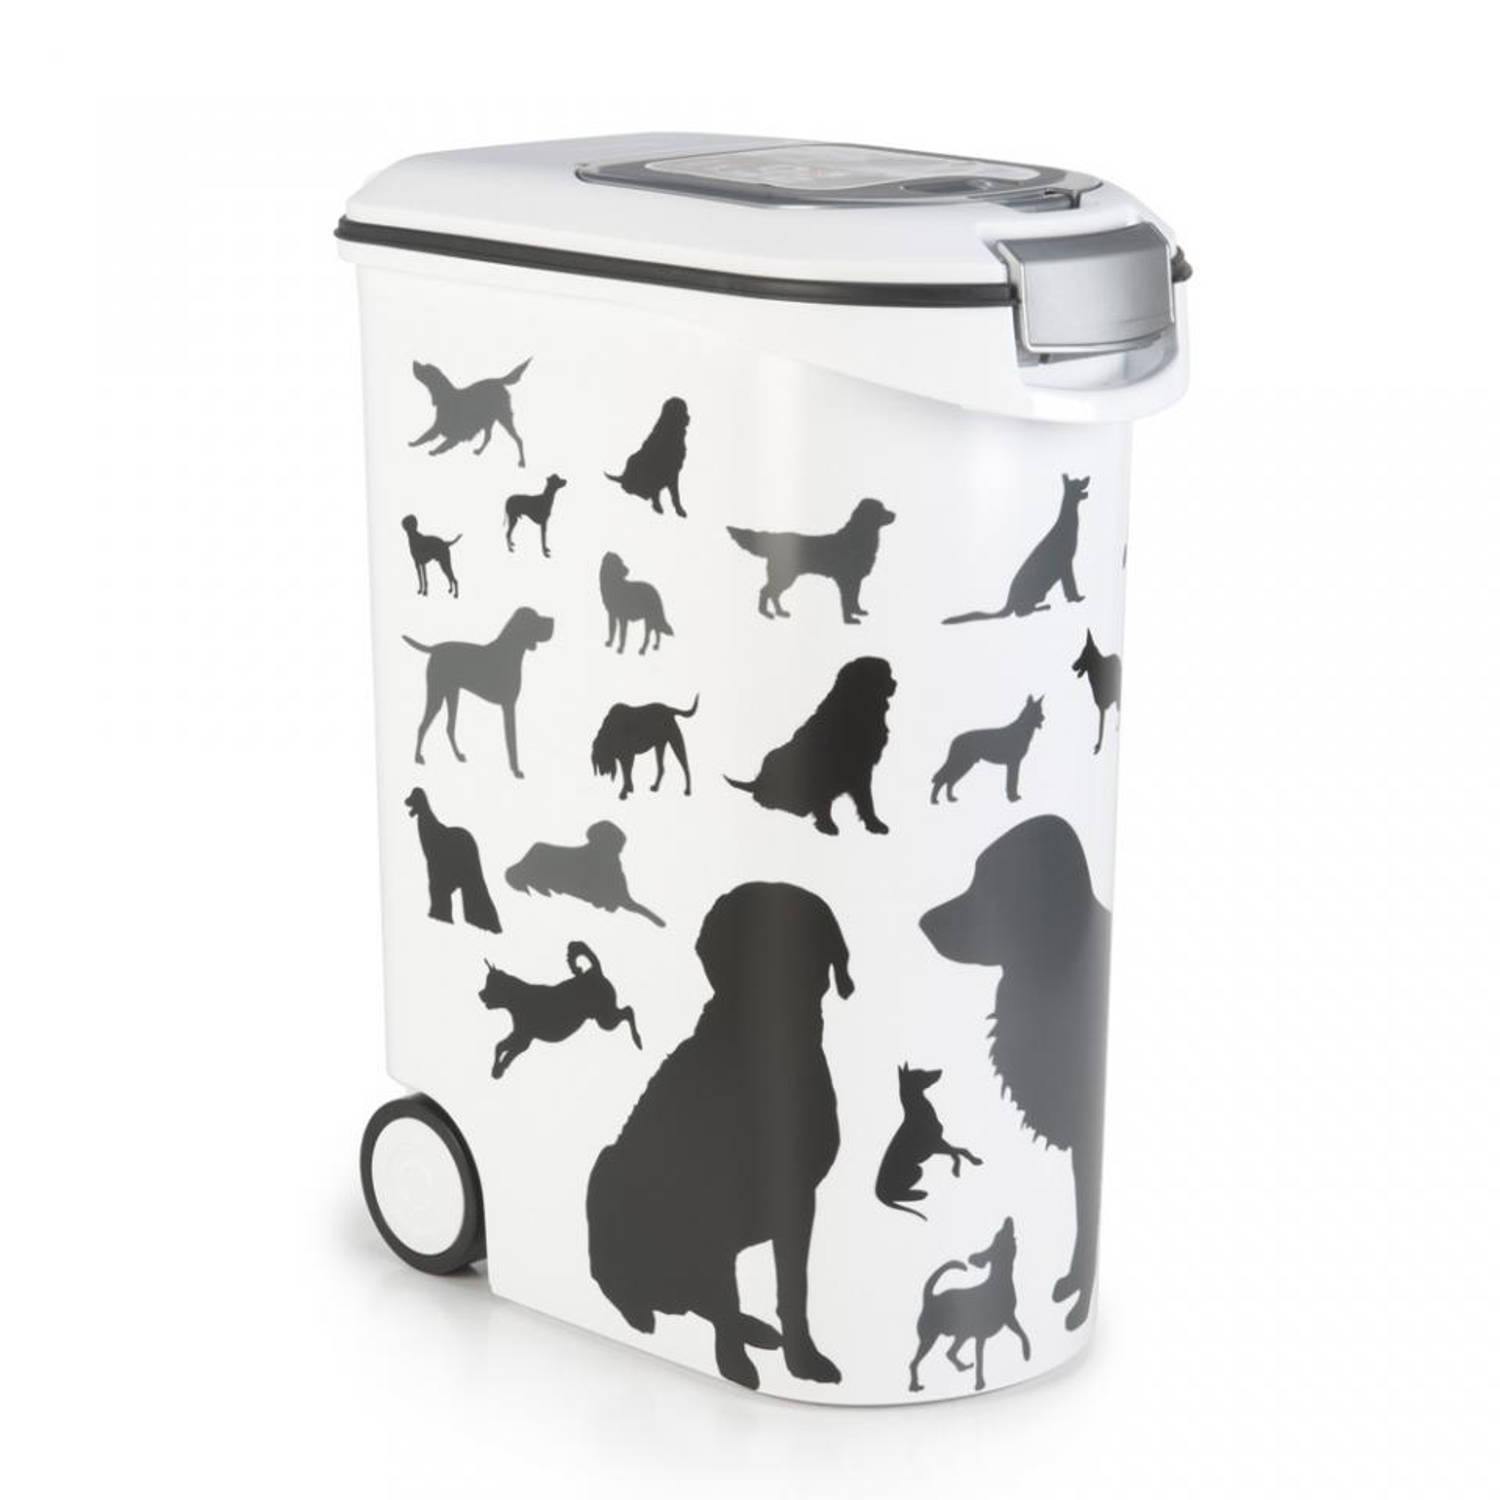 Curver voedselcontainer Silhouette hond - 54 l